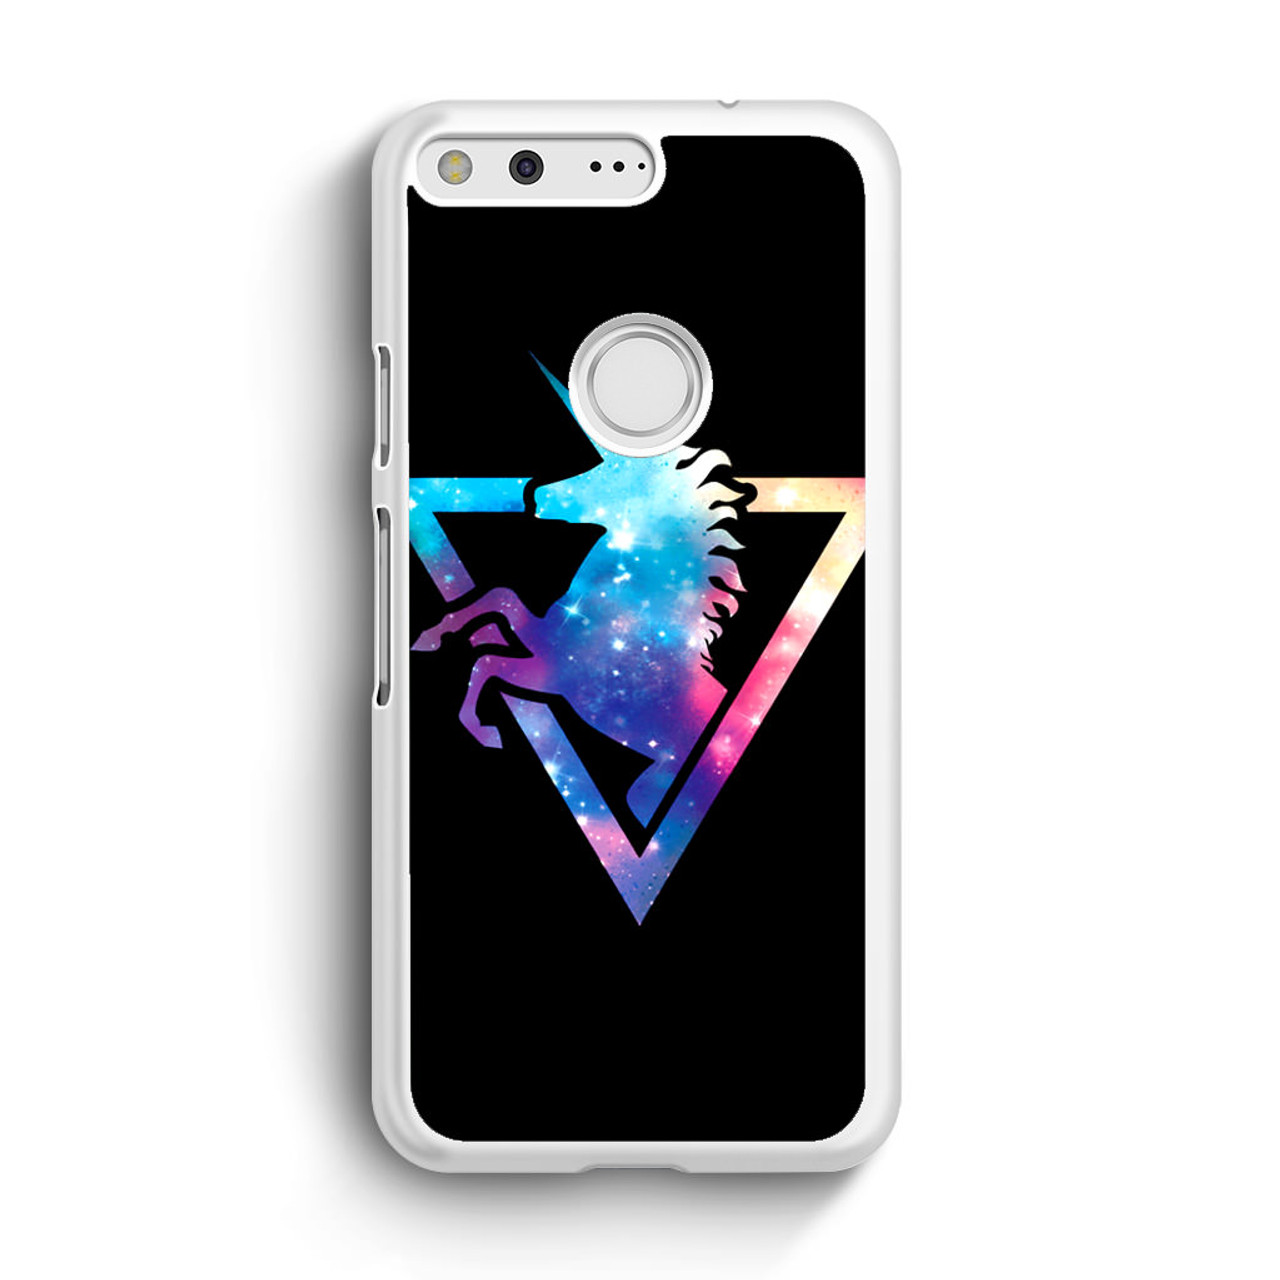 Unicorn iPhone 6/6S Case - CASESHUNTER